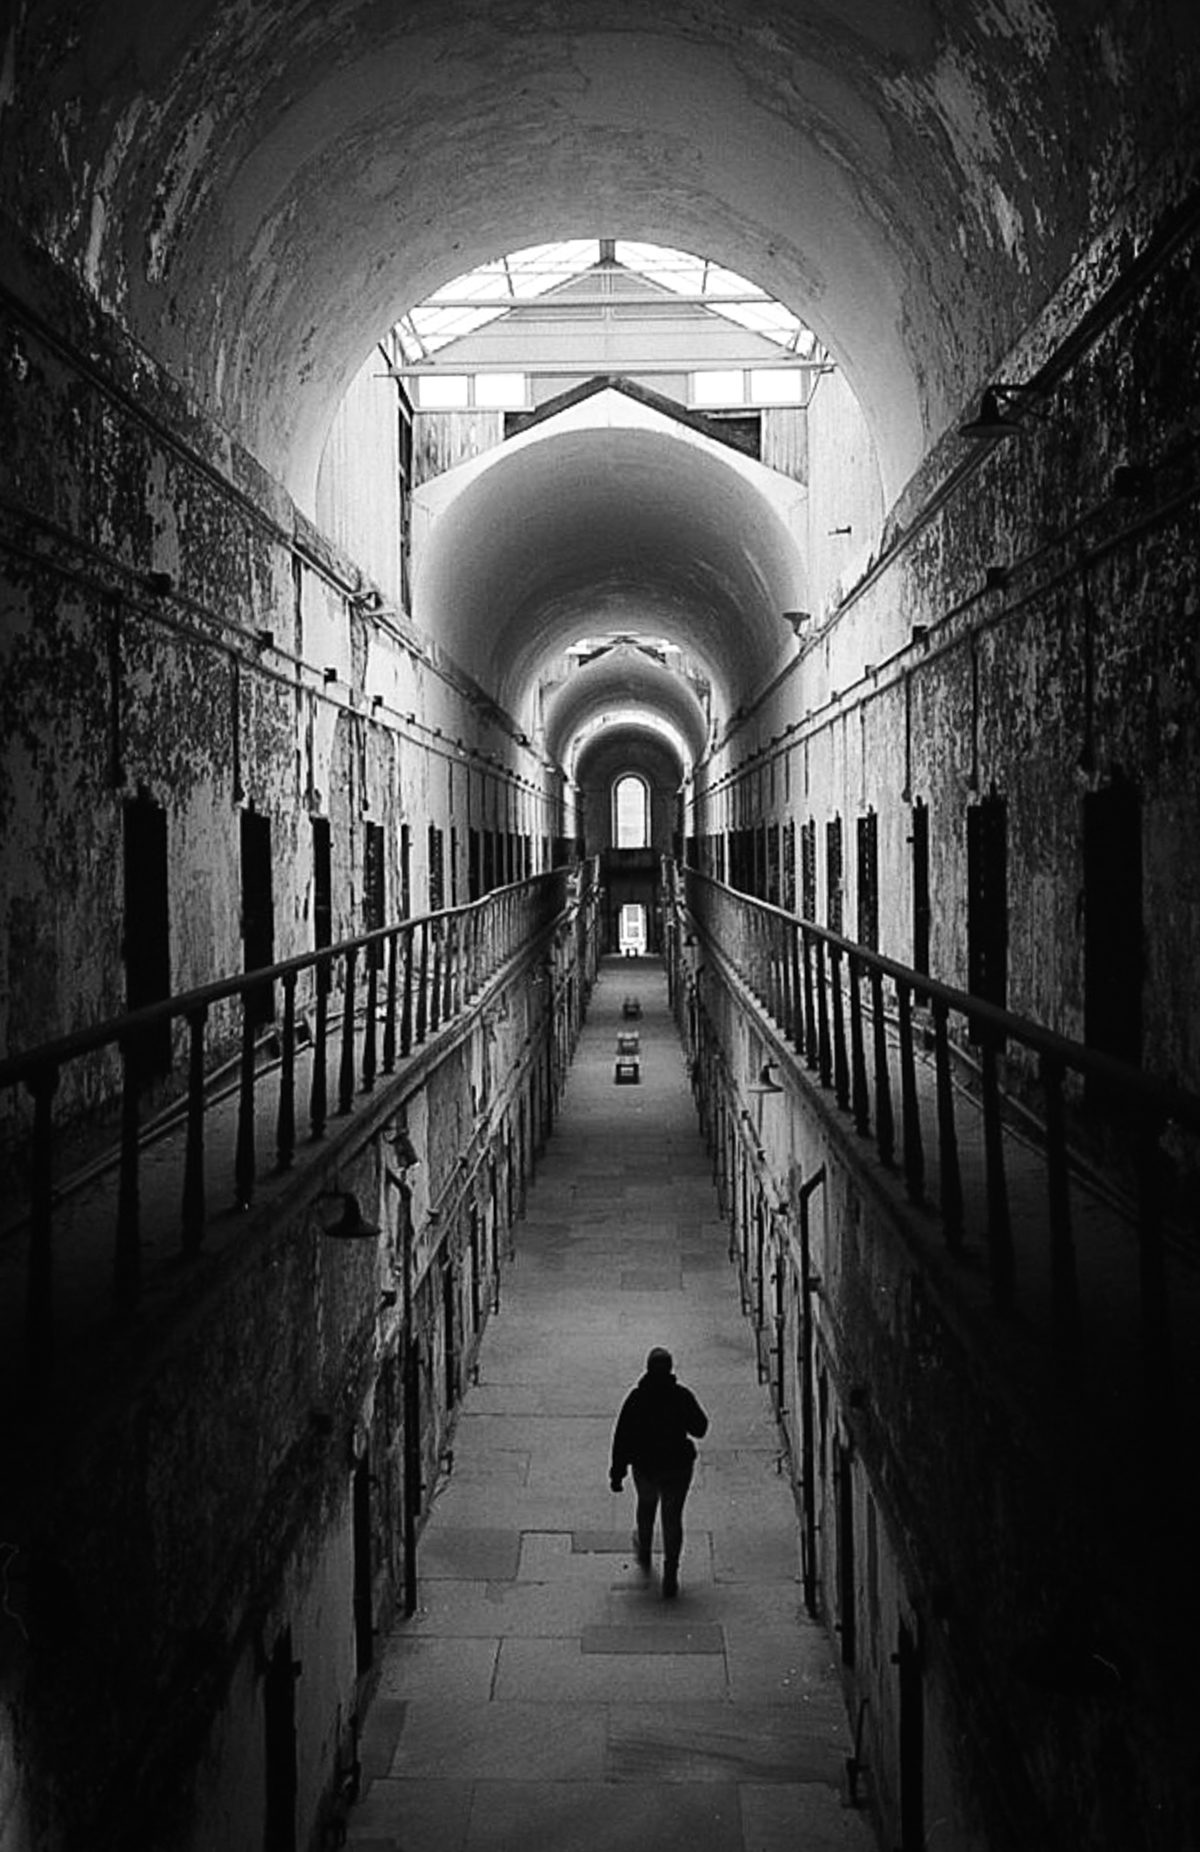 Cell Block 7 is probably the most photographed spot in the prison. The light, arches, and leading lines make it nearly impossible to pass up this photo opportunity. I waited for a person to pass under me to take the photo. Adding the human element I felt helped to tell the story and give a sense of perspective.